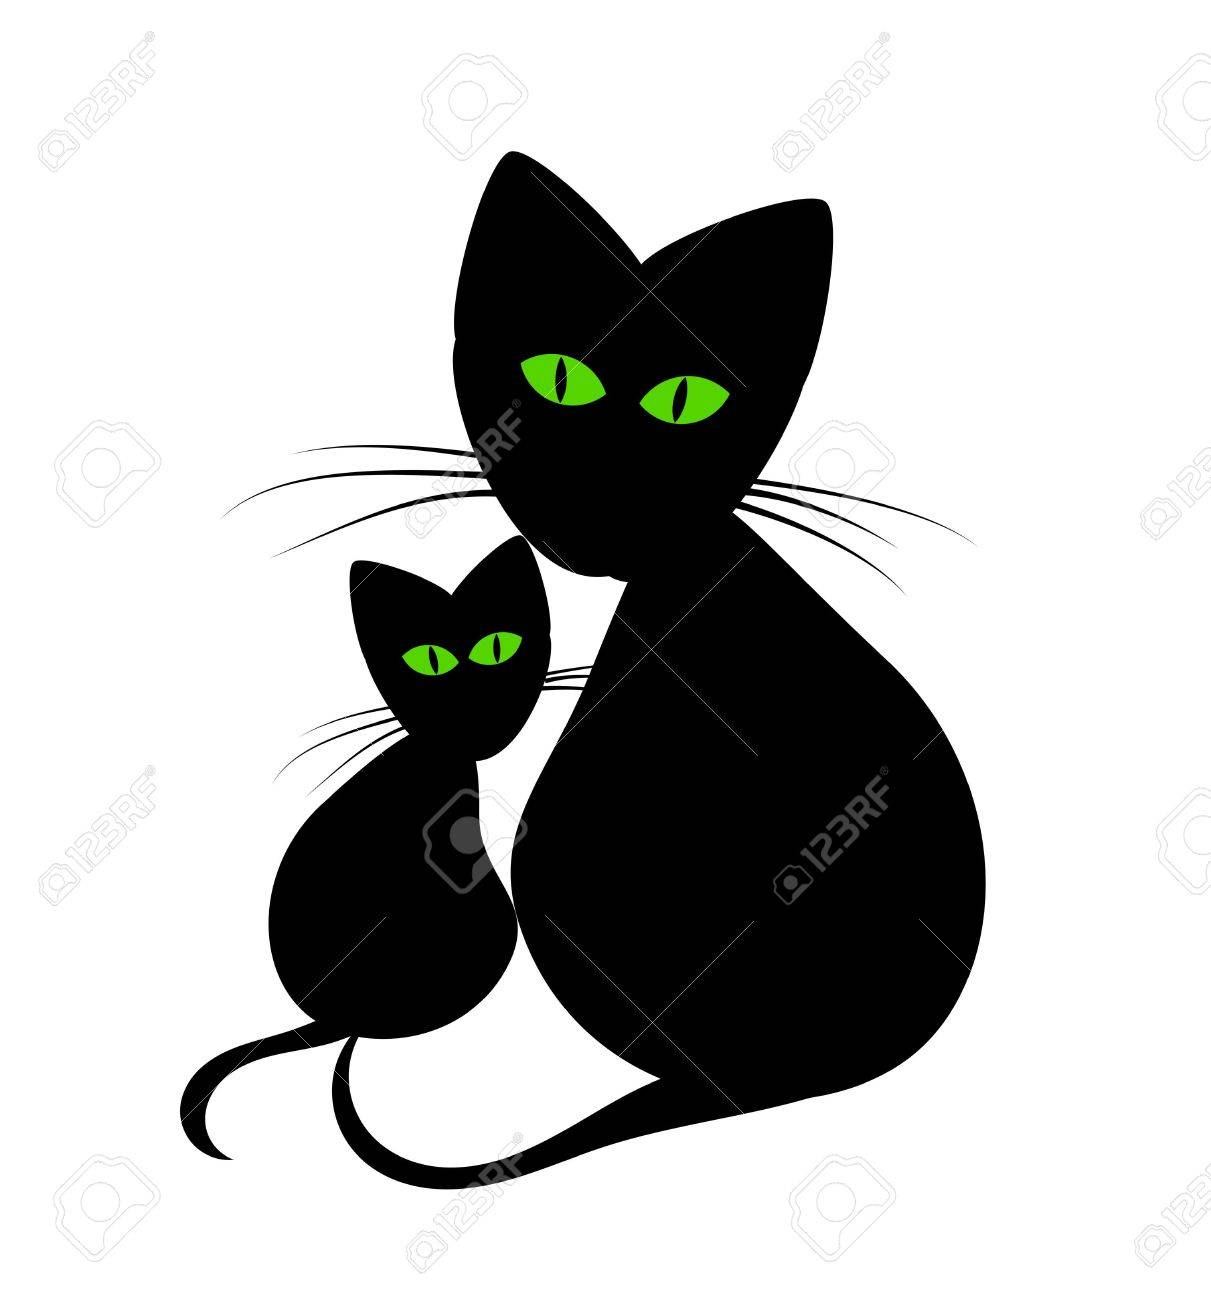 black cats cats mom and kitten stock vector 10300122 - Black Cat Silhouette Halloween